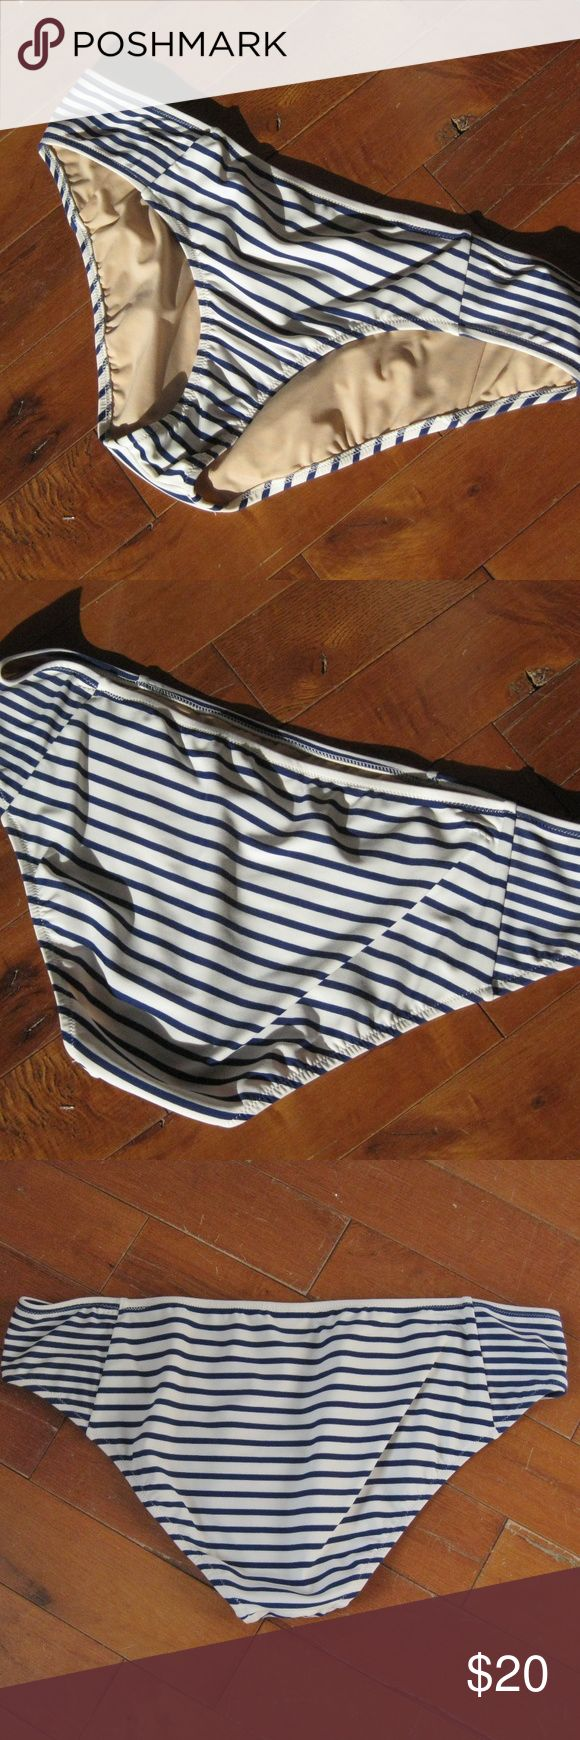 NWT J. Crew Bikini Bottoms Striped Blue White XL Brand new J Crew swim separate Bikini Bottom Blue White Stripes Fully lined Size XL Thanks for looking! #23192 J. Crew Swim Bikinis